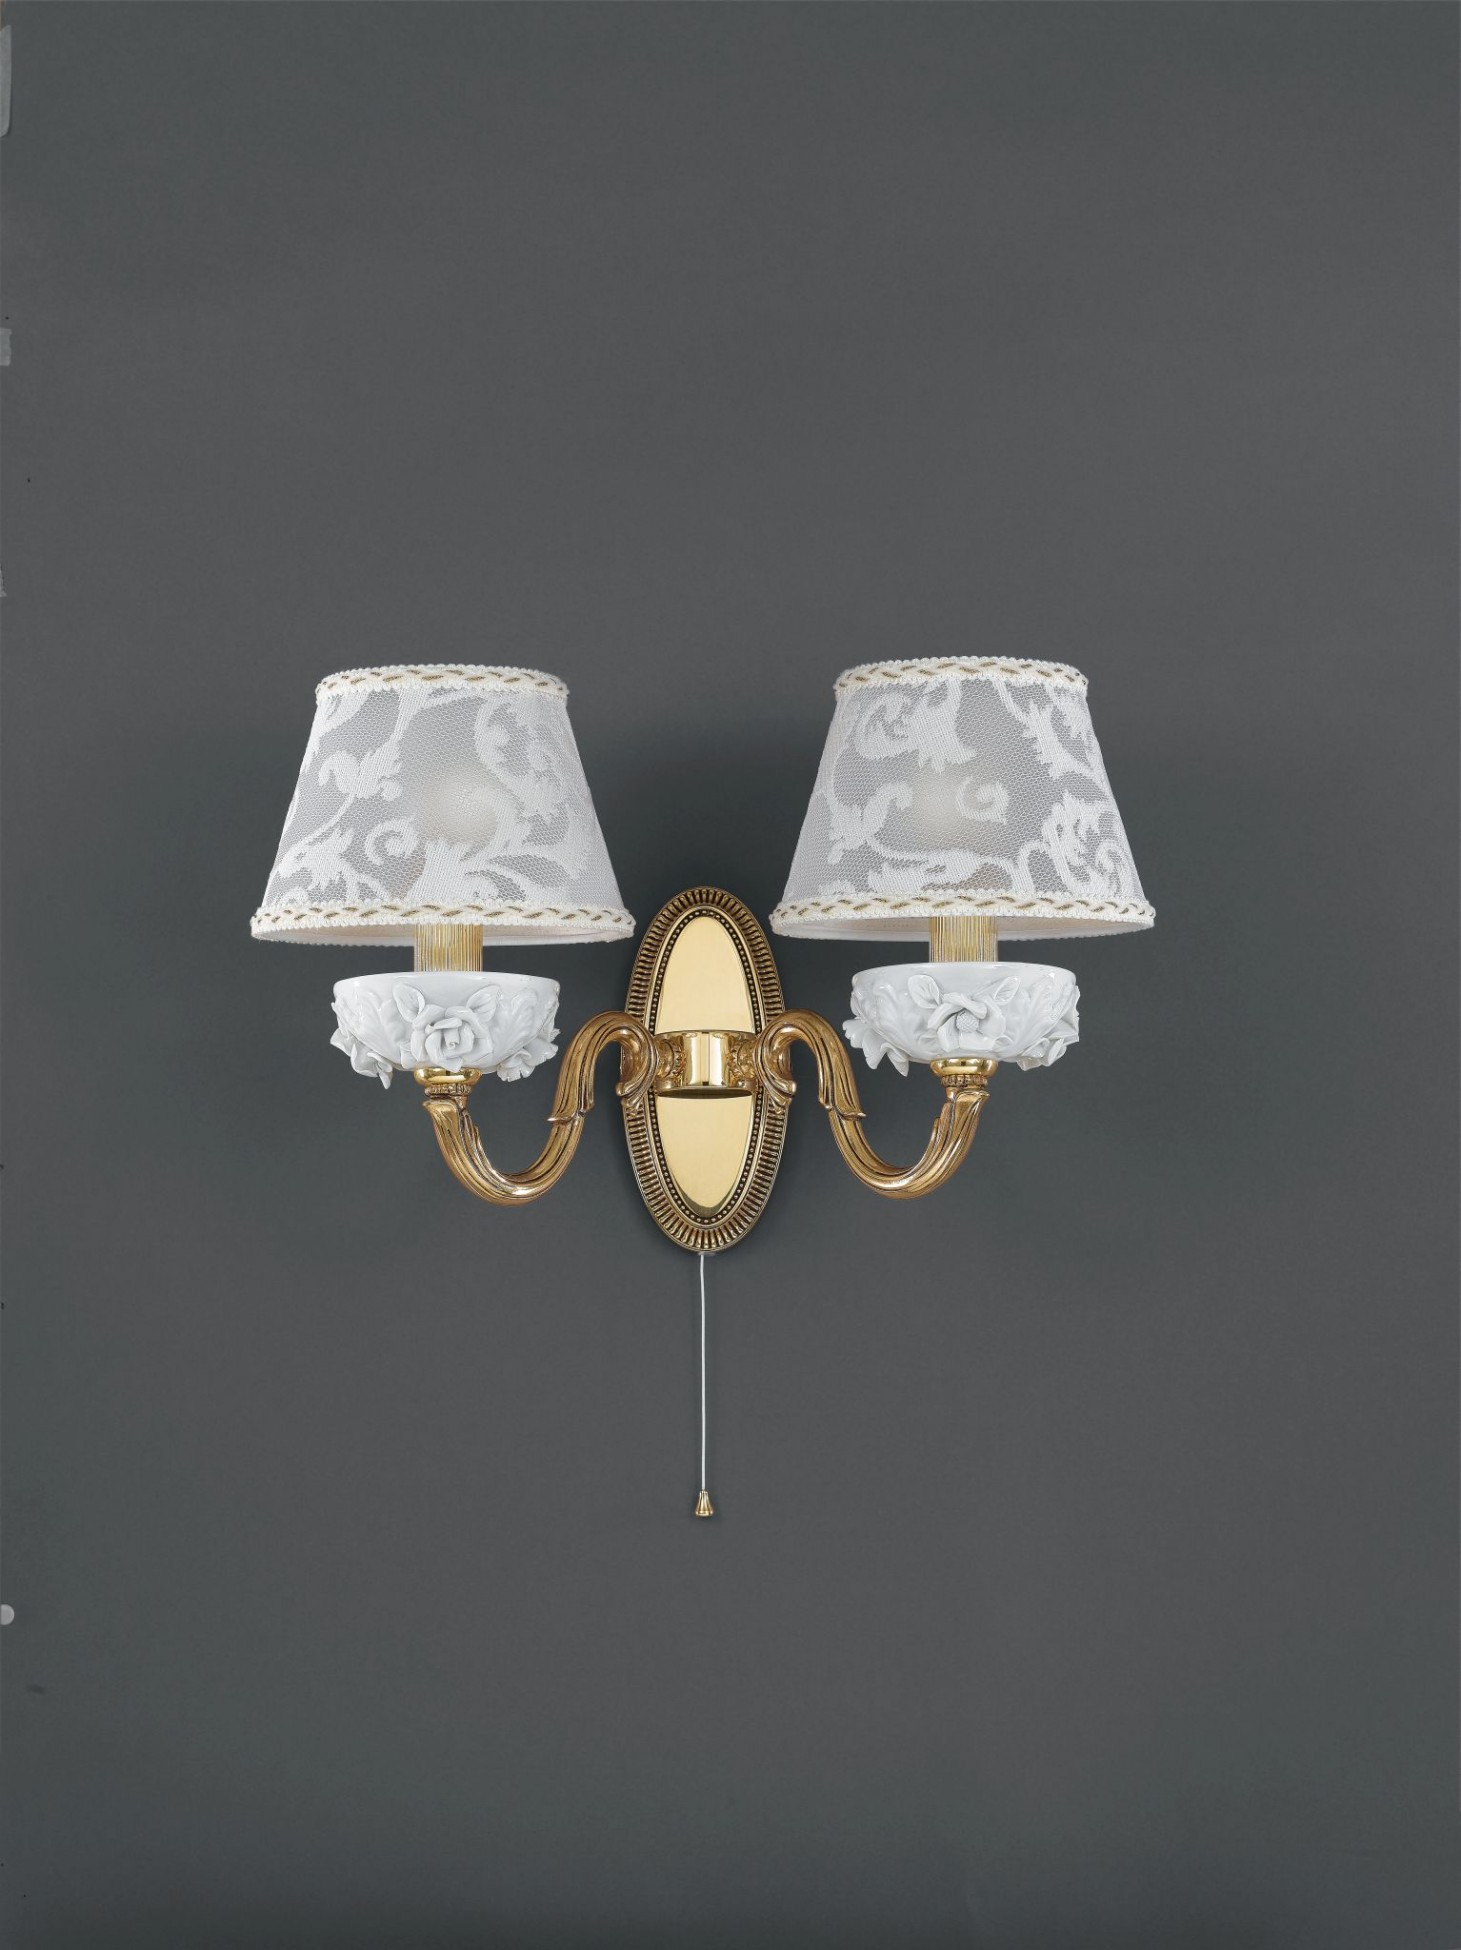 2 light golden brass and white porcelain wall sconce with lamp shade